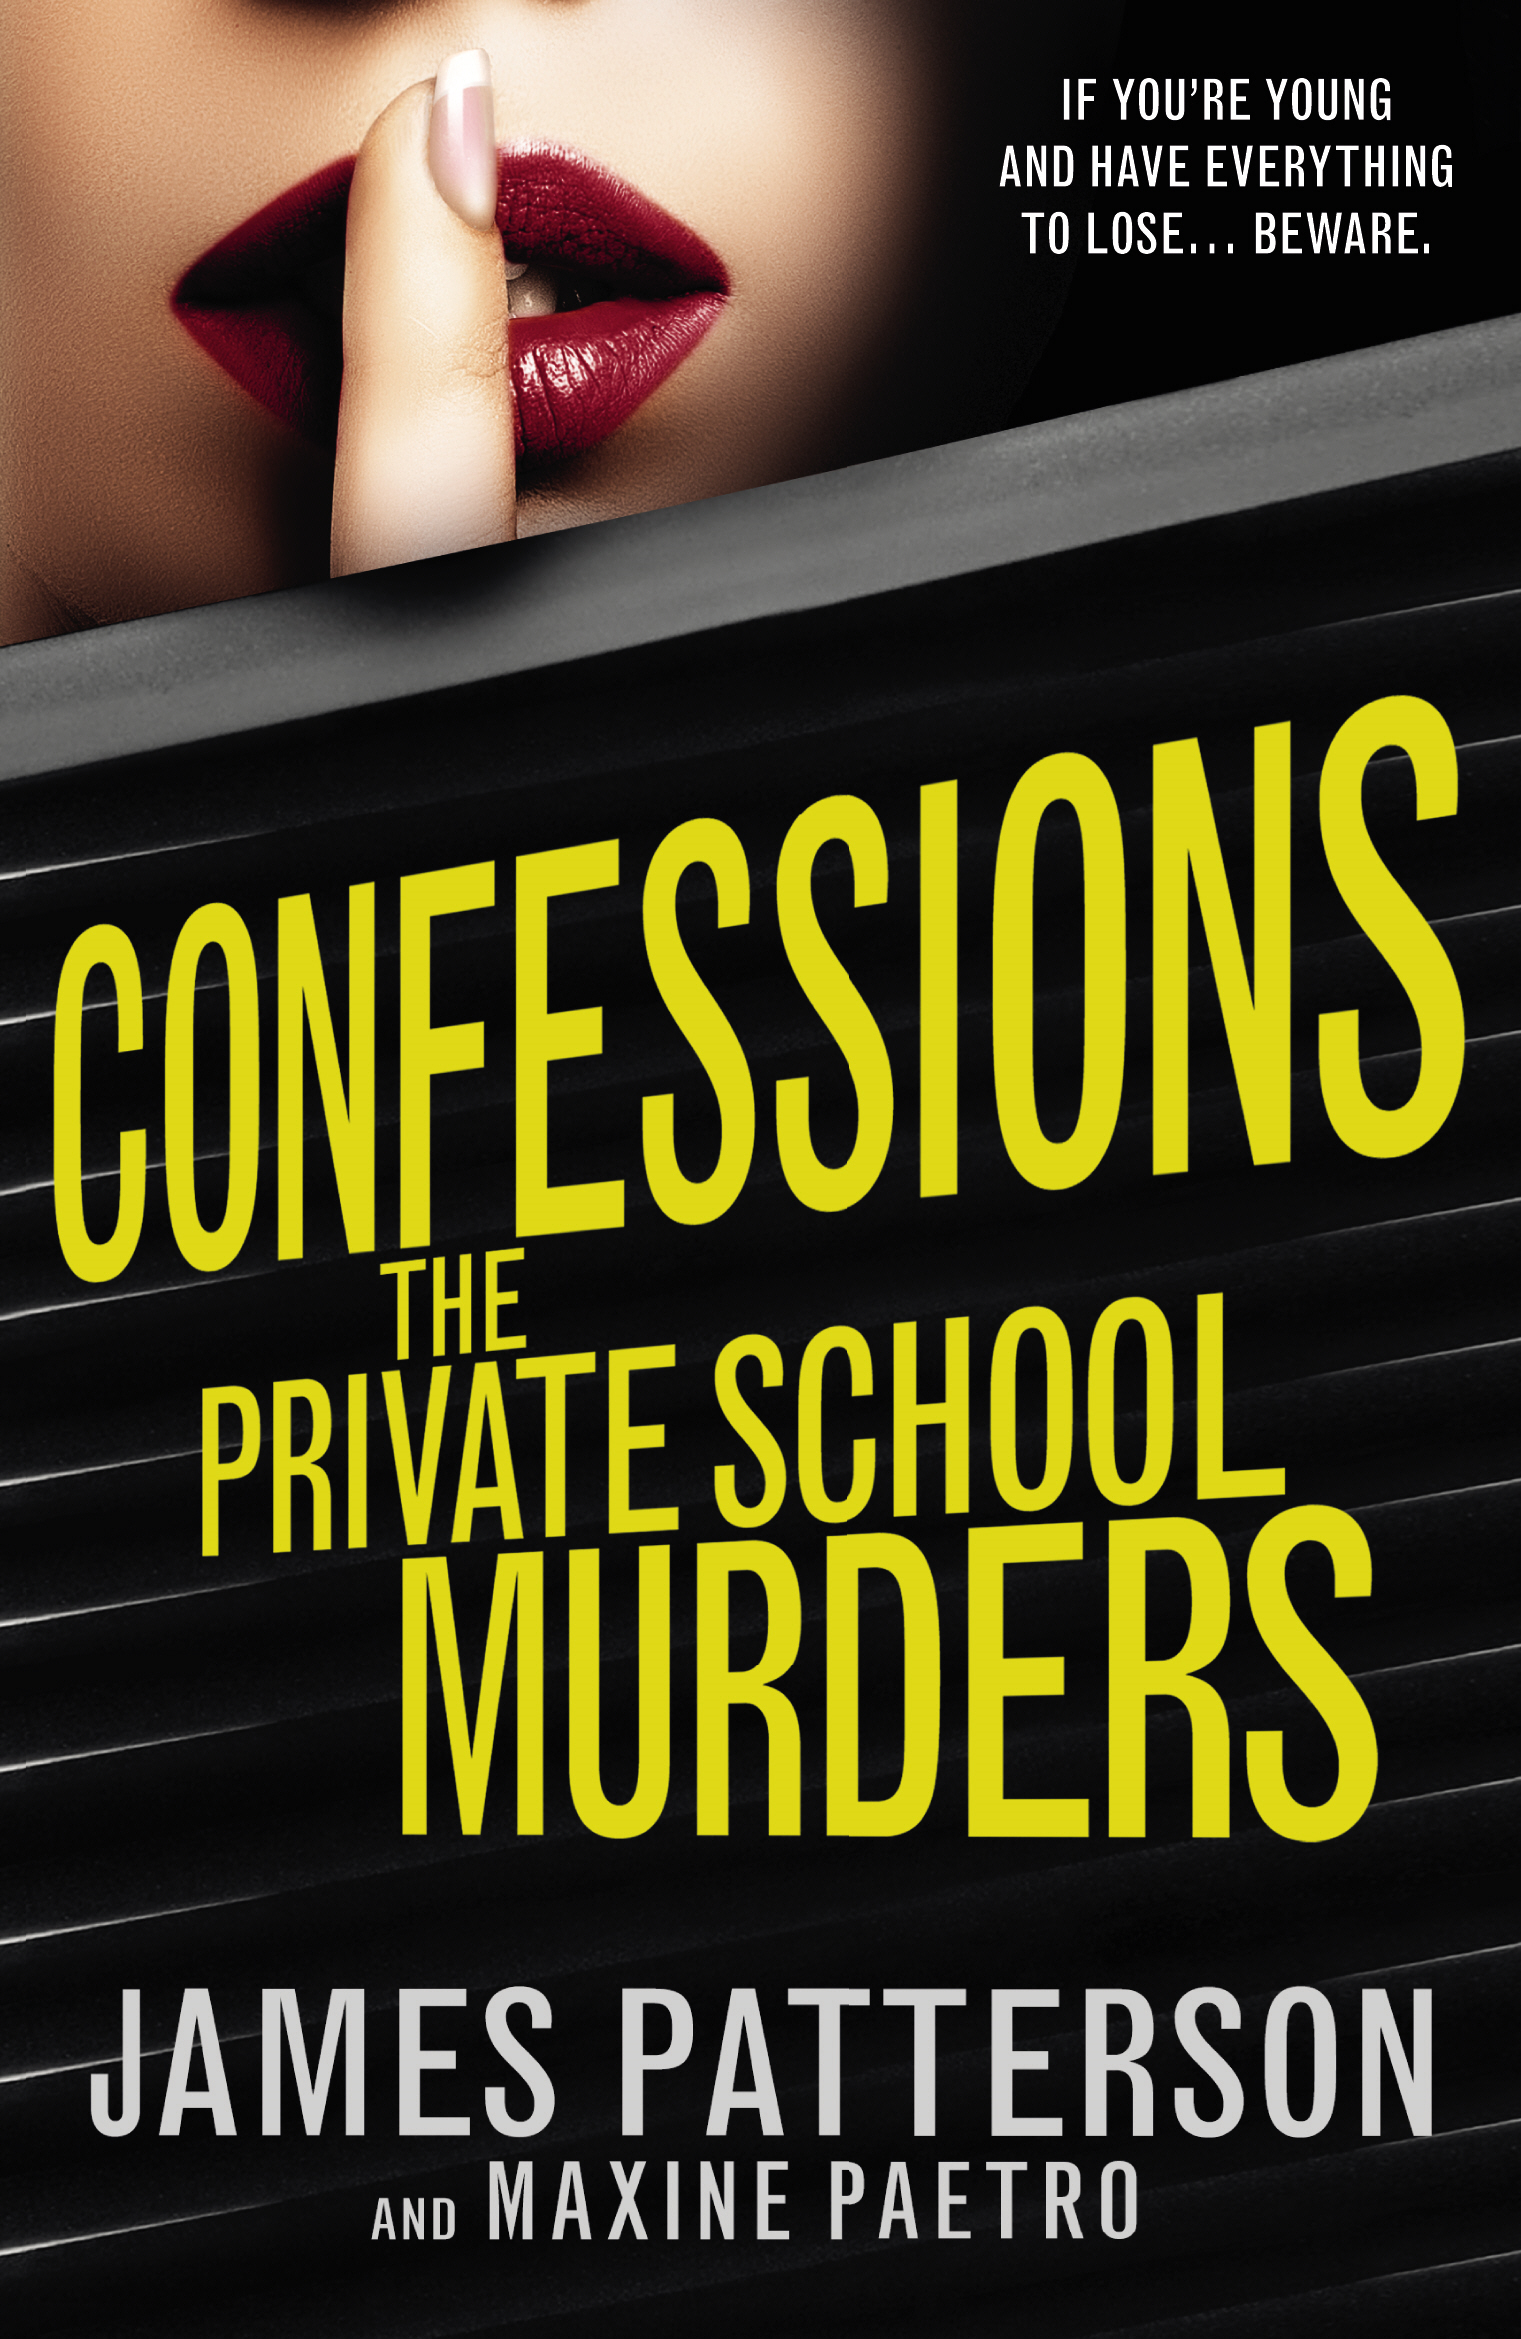 Confessions: The Private School Murders (Confessions 2)